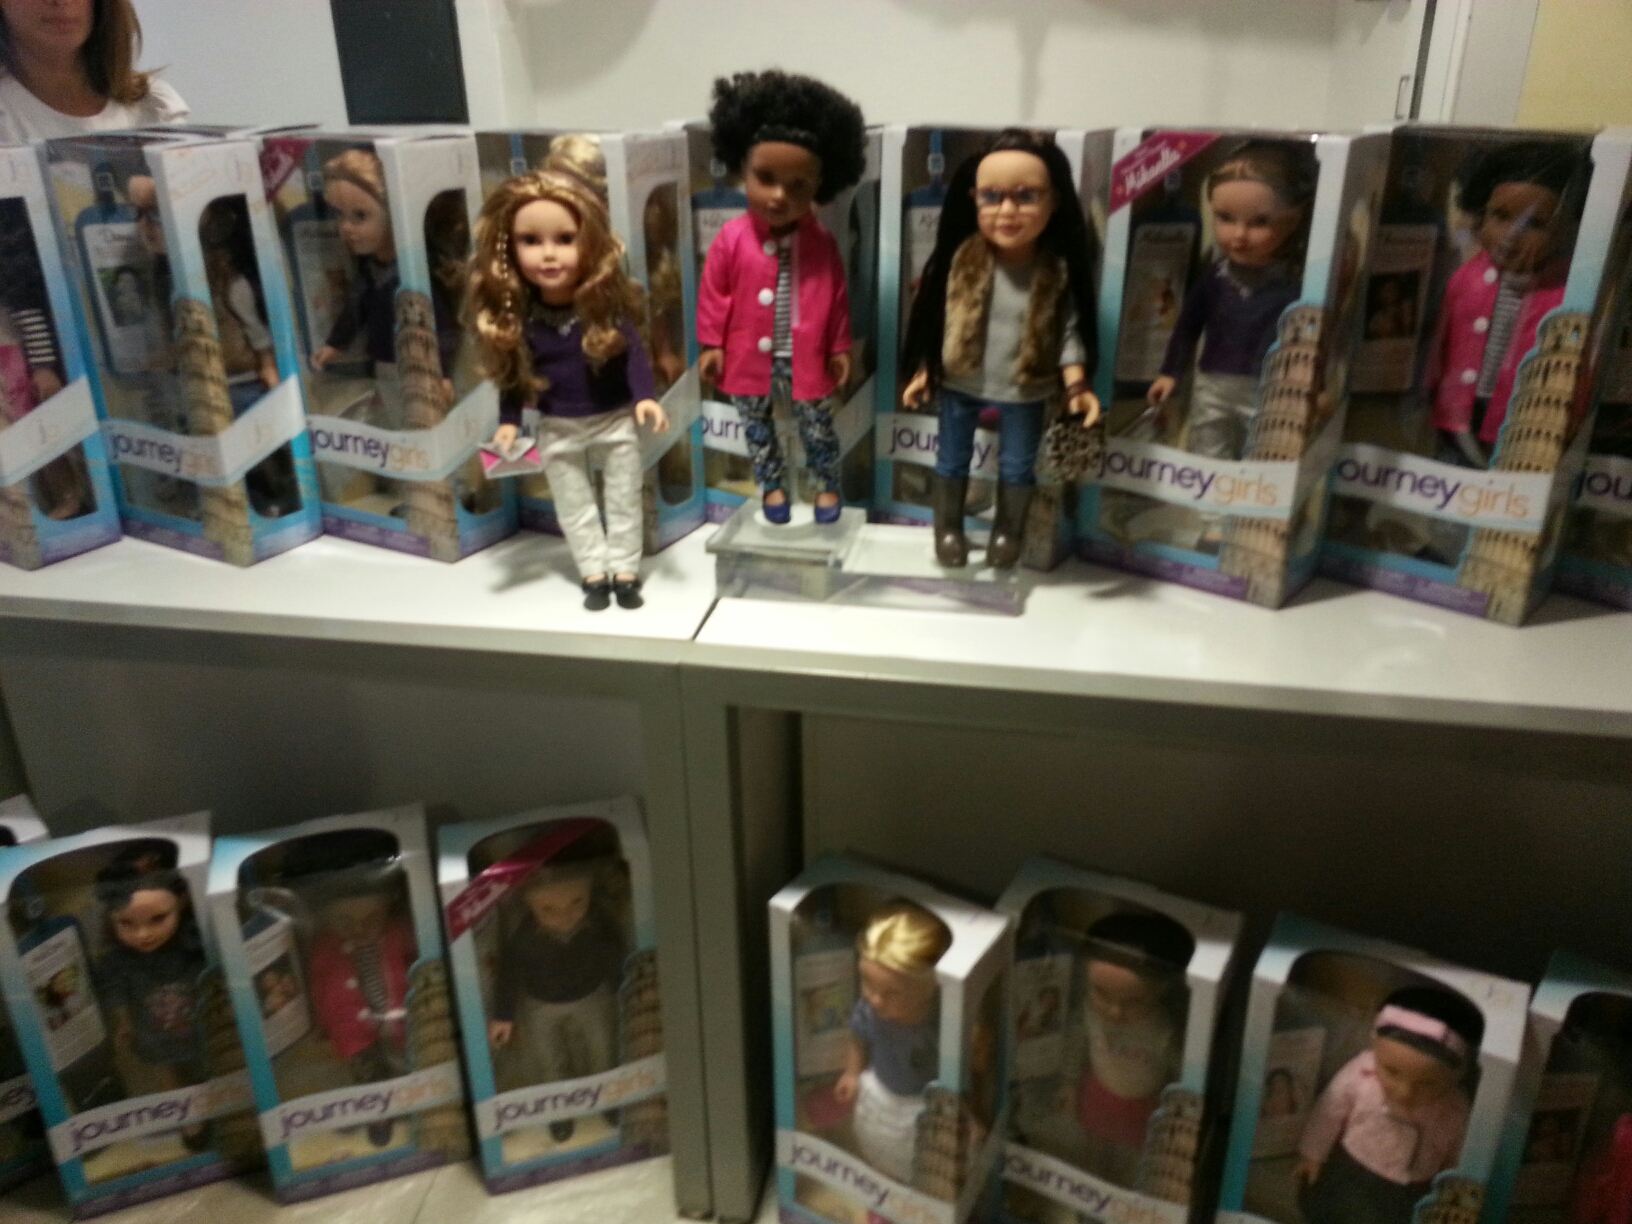 Toys R Us Journey Girls : Celebrate 5 years of journey girls as they travel to italy! @toysrus